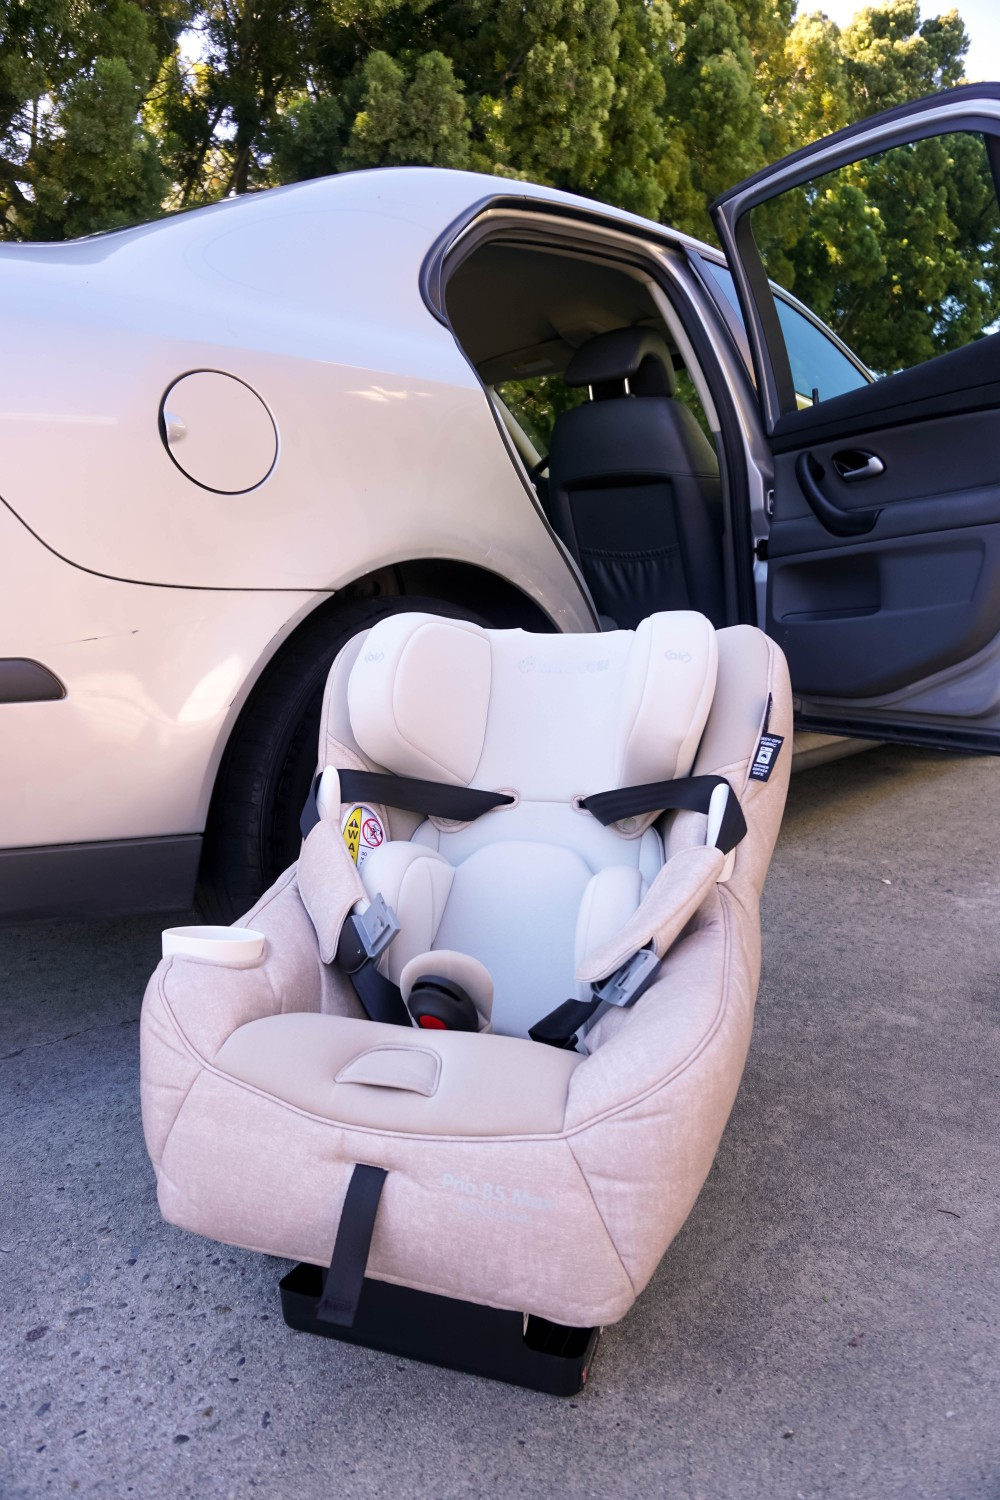 Maxi-Cosi Pria 85 Max Convertible Car Seat-Maxi Cosi Car Seat-Baby Gear-Best of Baby Products-Convertible Car Seat-Motherhood Post-Have Need Want